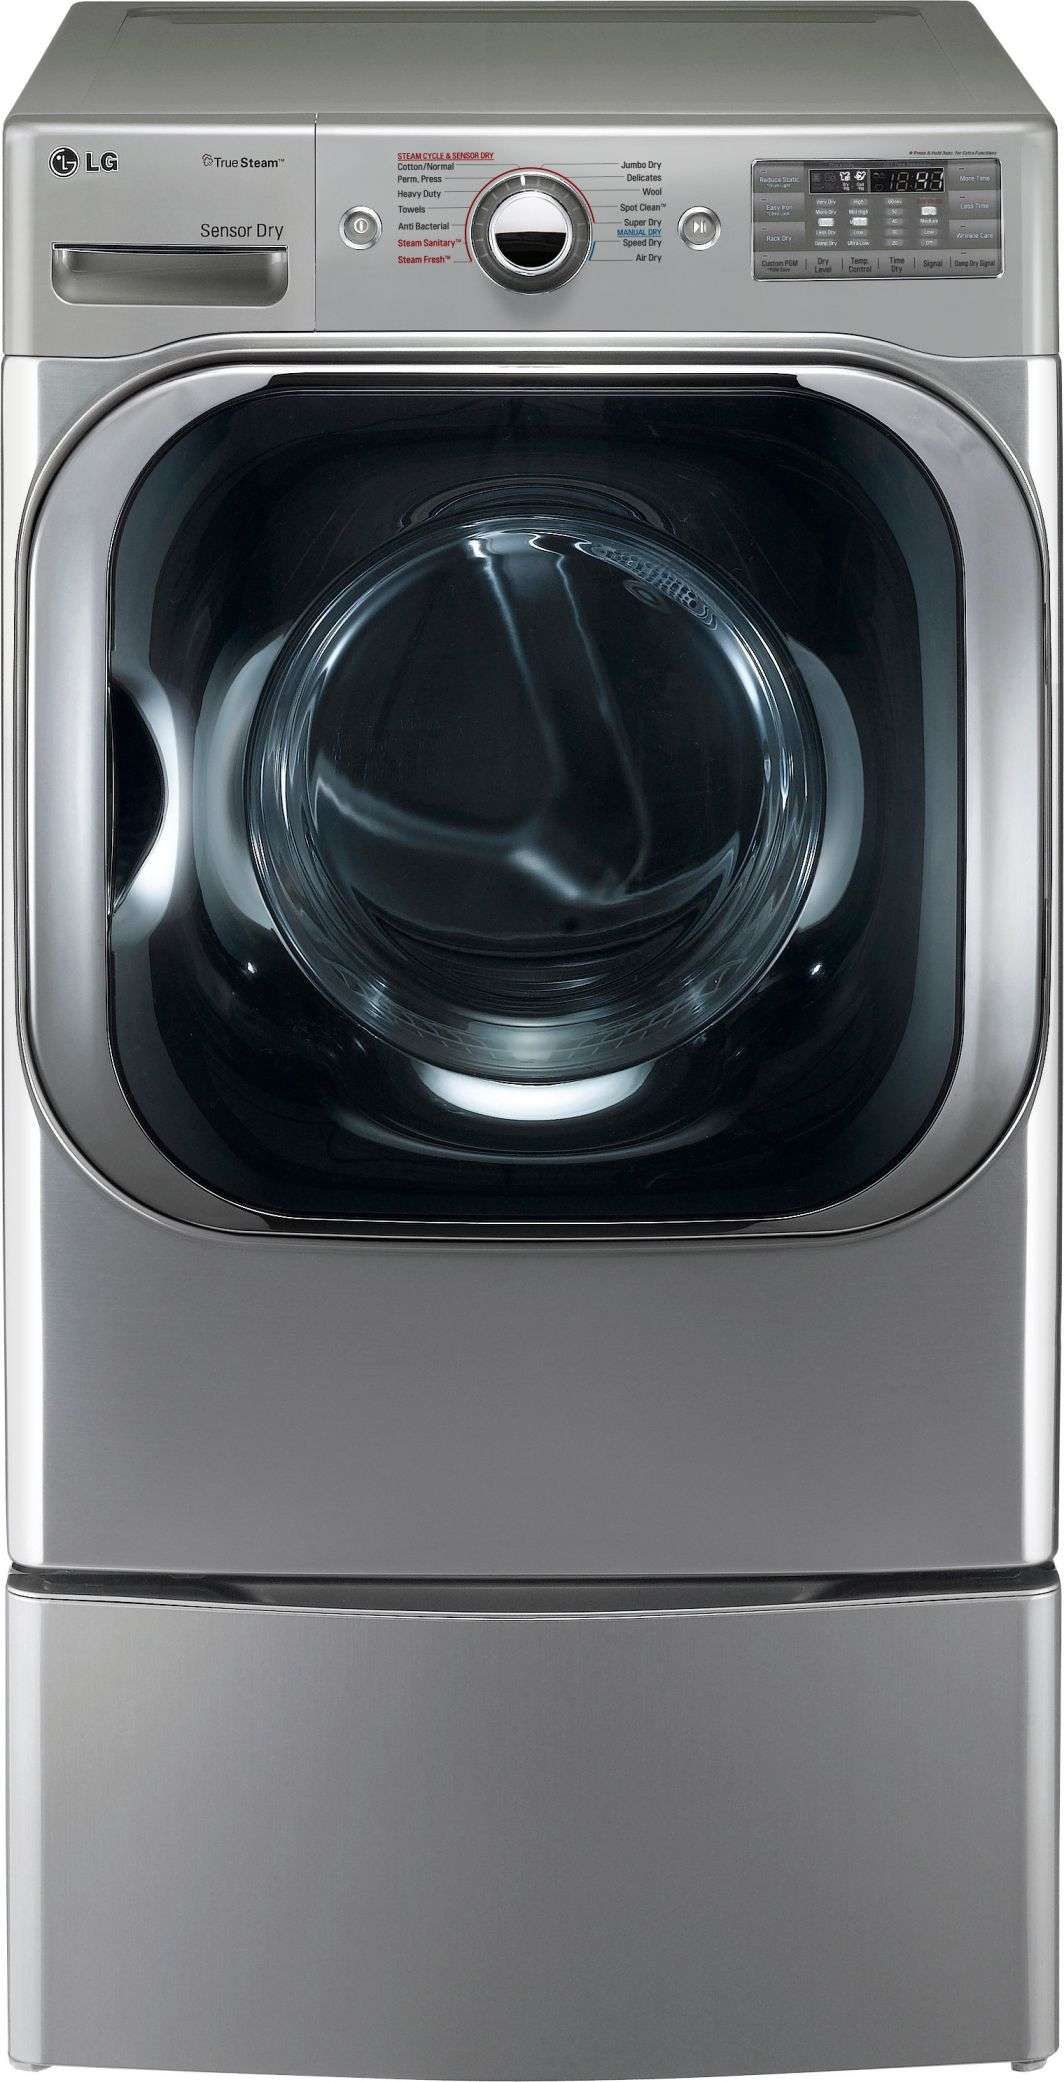 Viking Range Expands Dishwasher Recall An Electrical Component In